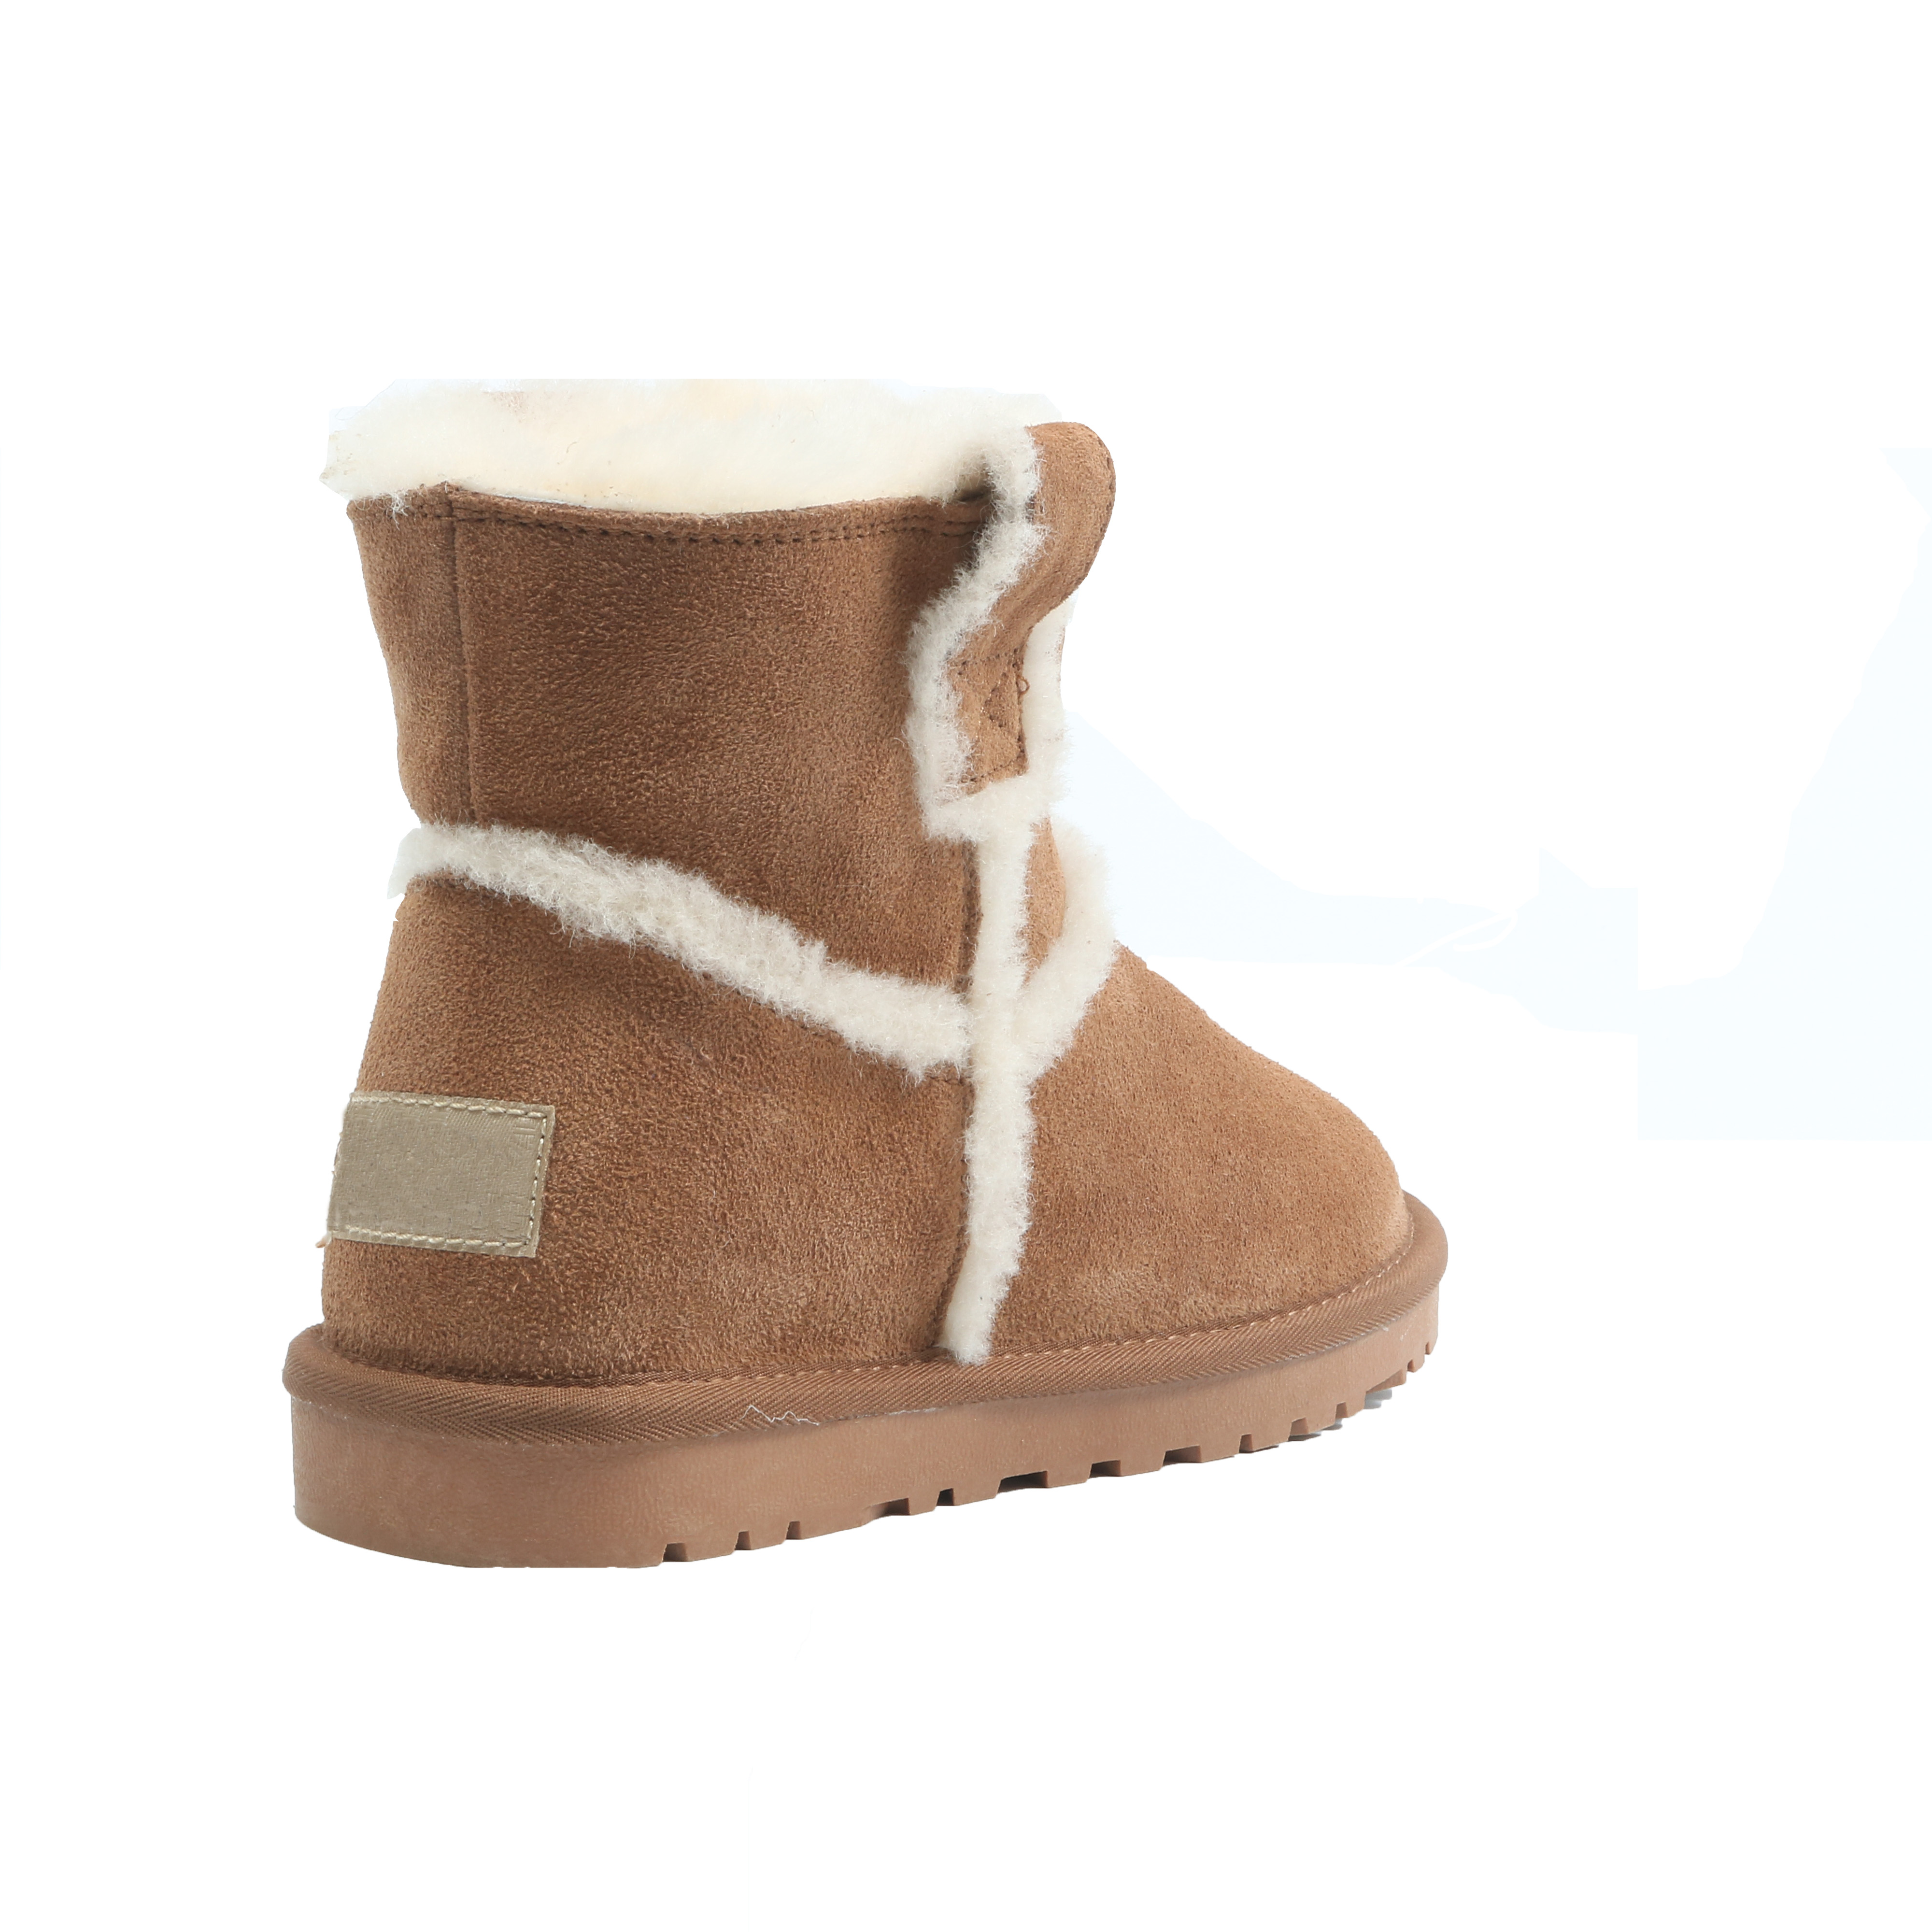 2018 winter snow <strong>boots</strong> women ankle <strong>boots</strong> furry antislip winter <strong>boots</strong>